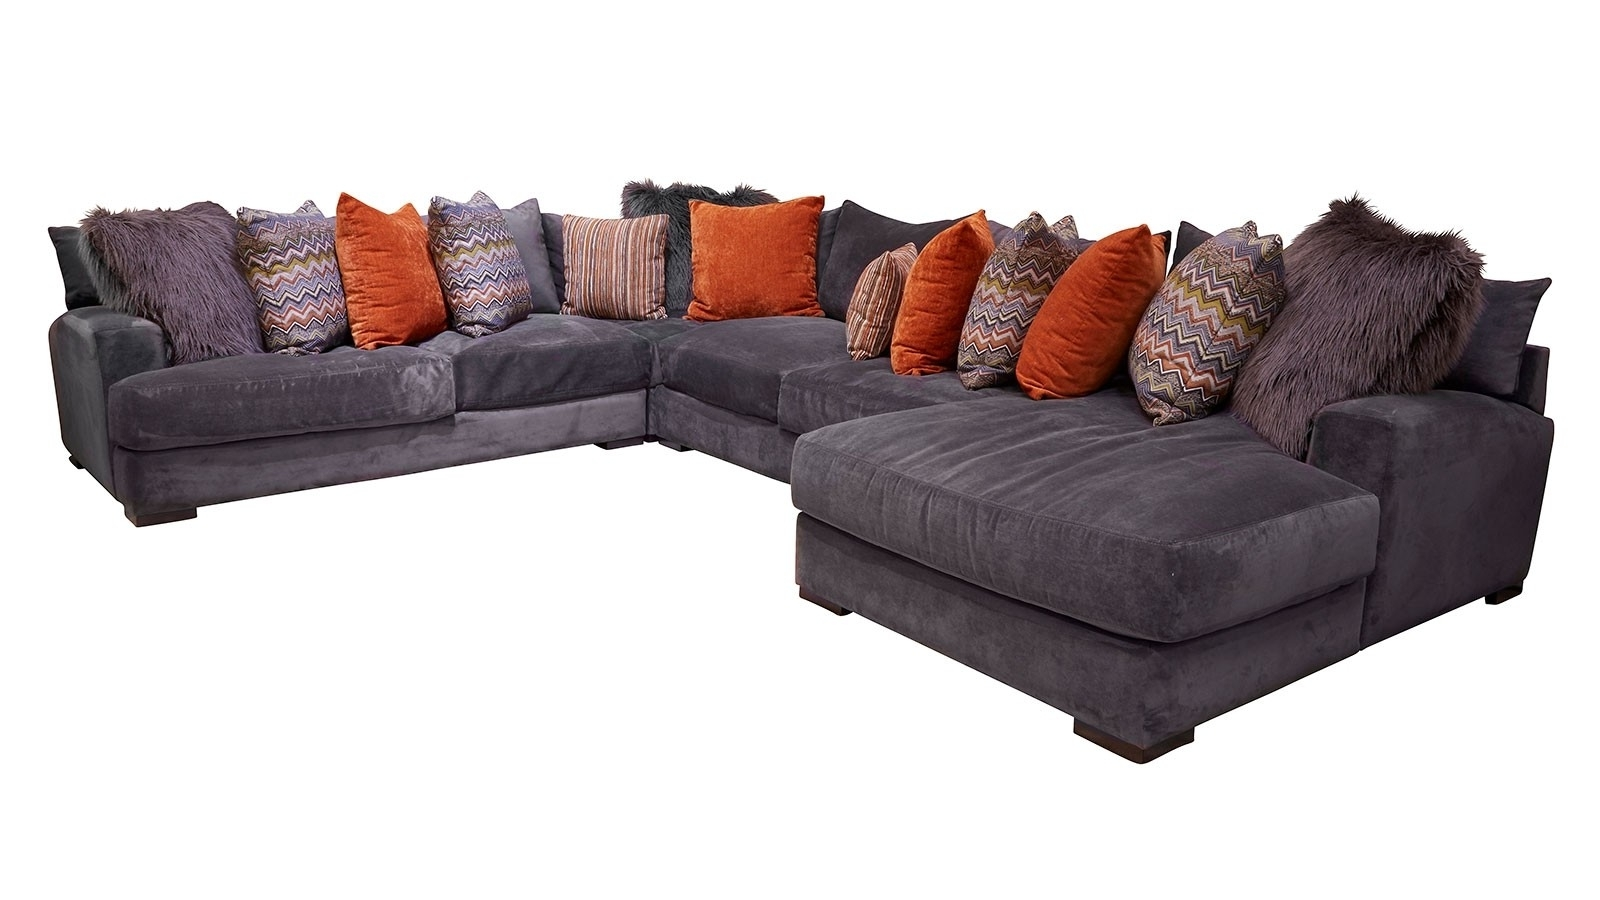 Gallery Furniture With Regard To Newest Gallery Furniture Sectional Sofas (Gallery 20 of 20)